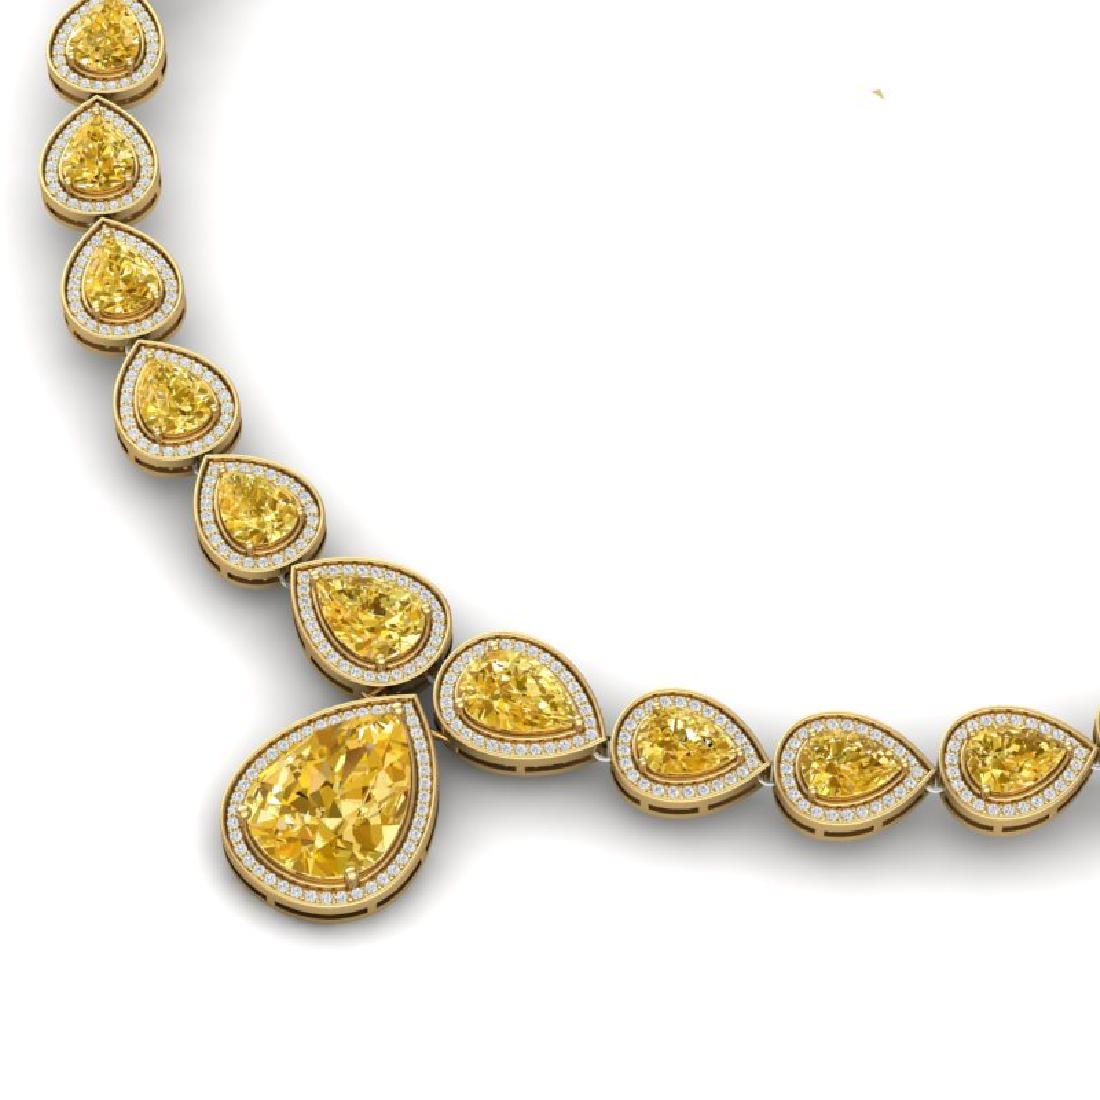 48.24 CTW Royalty Canary Citrine & VS Diamond Necklace - 2